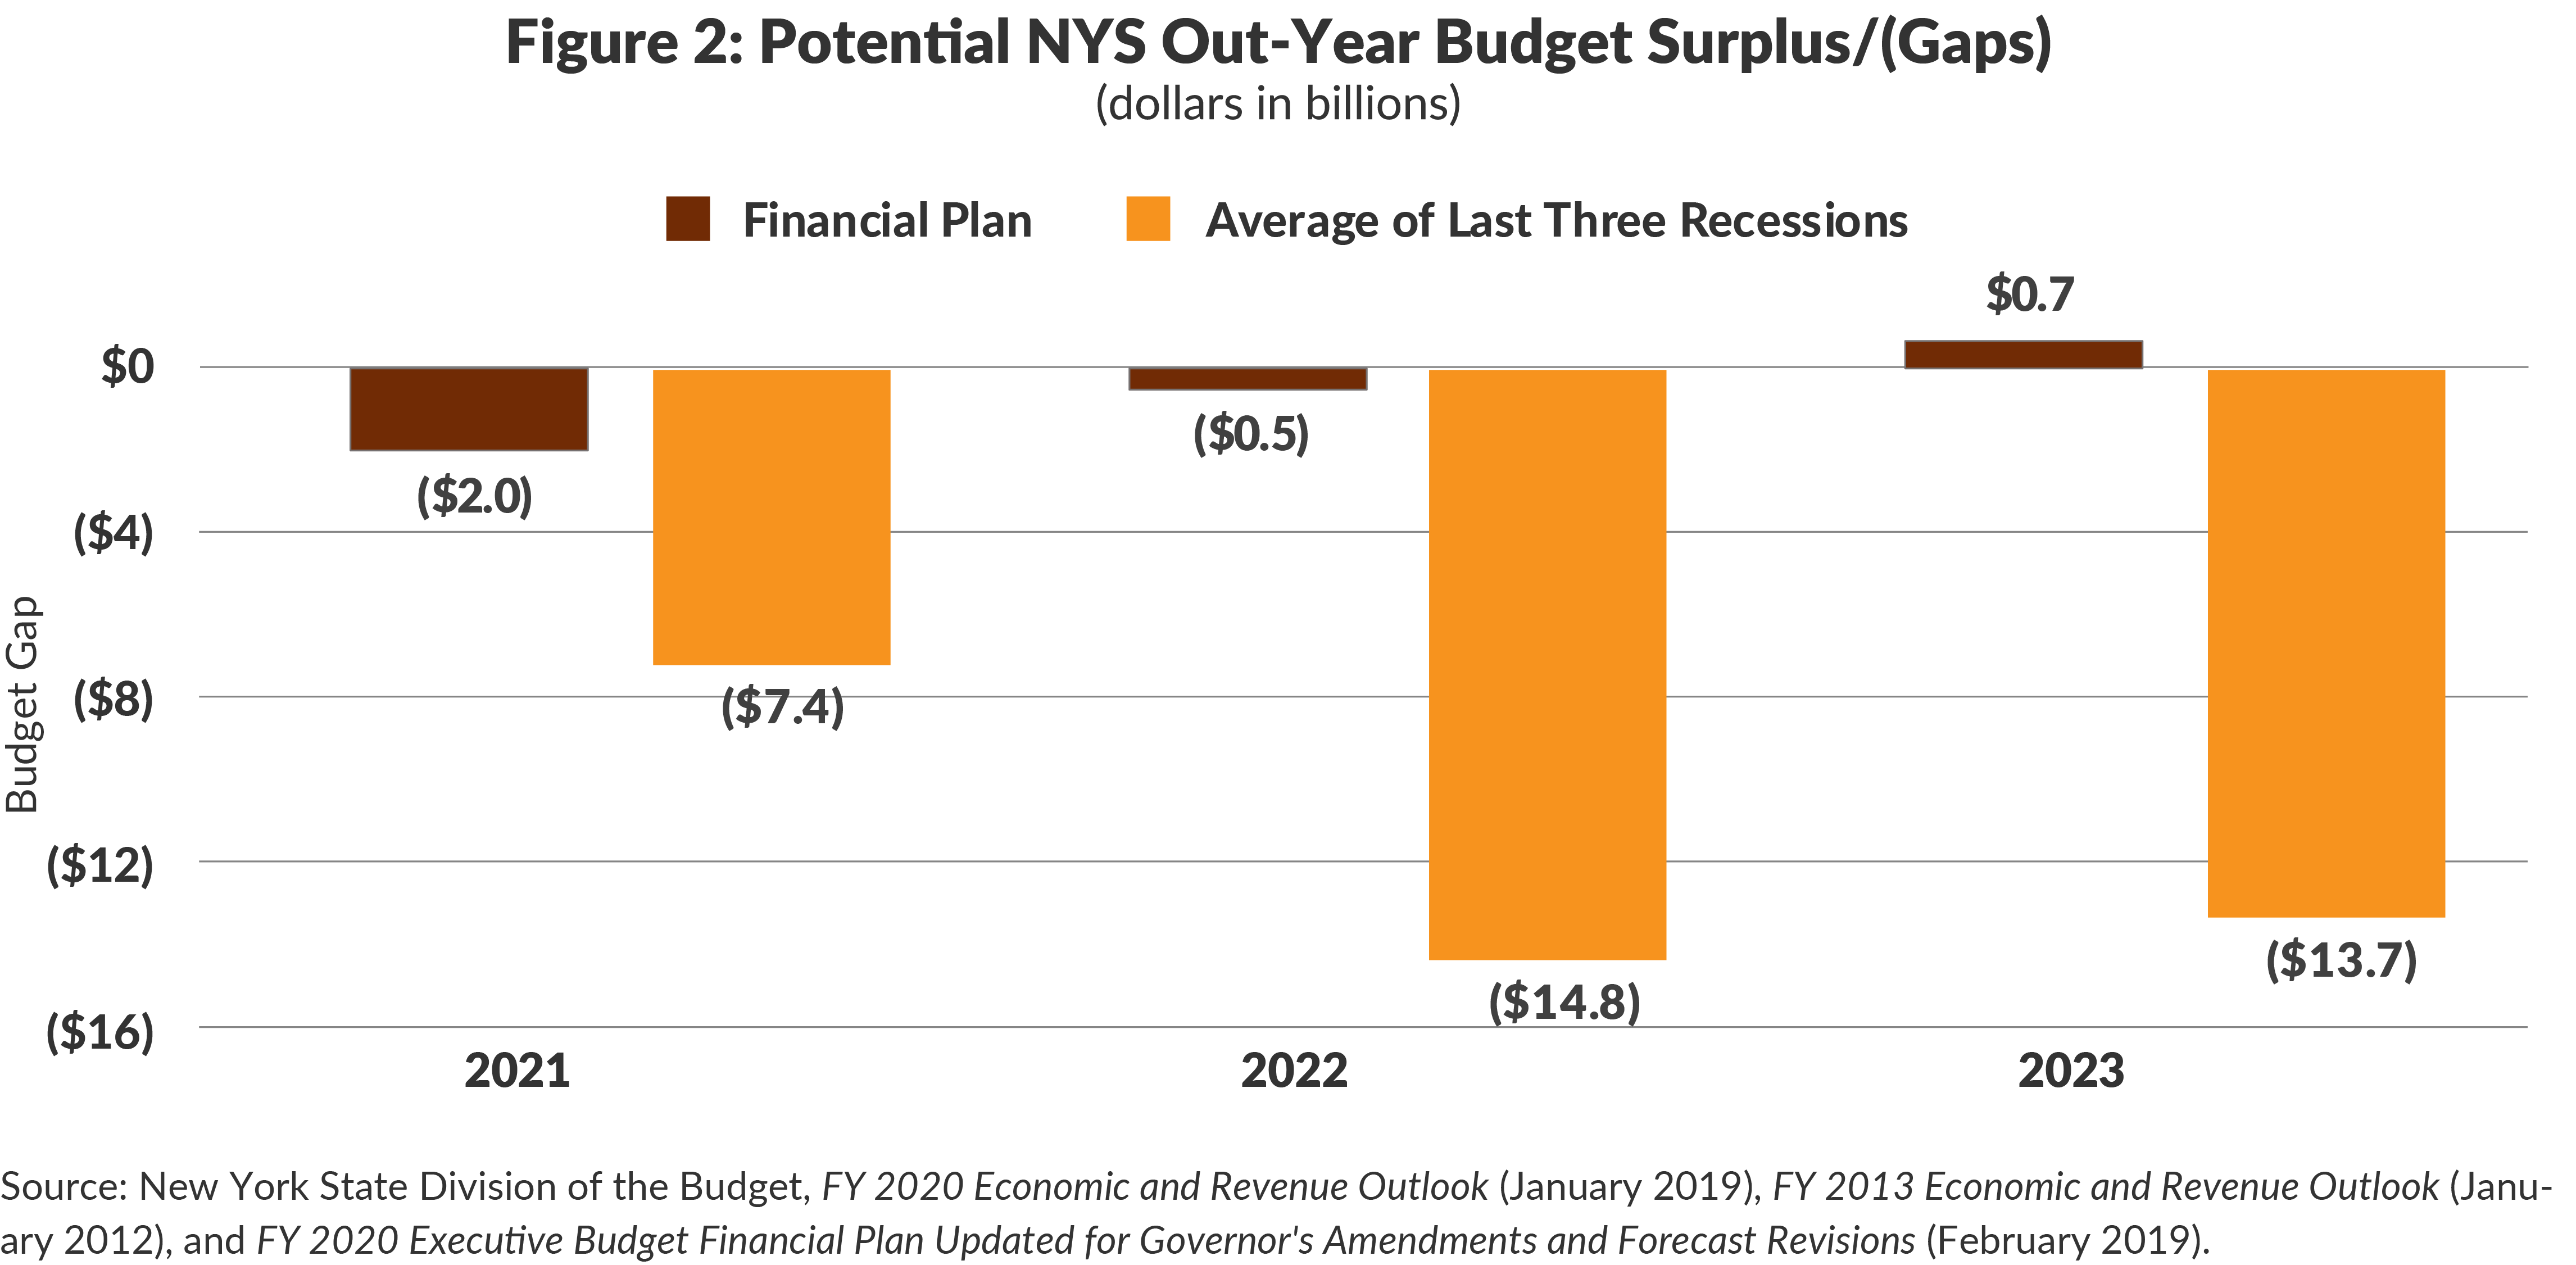 Figure 2: Potential NYS Out-Year Budget Surplus/(Gaps)